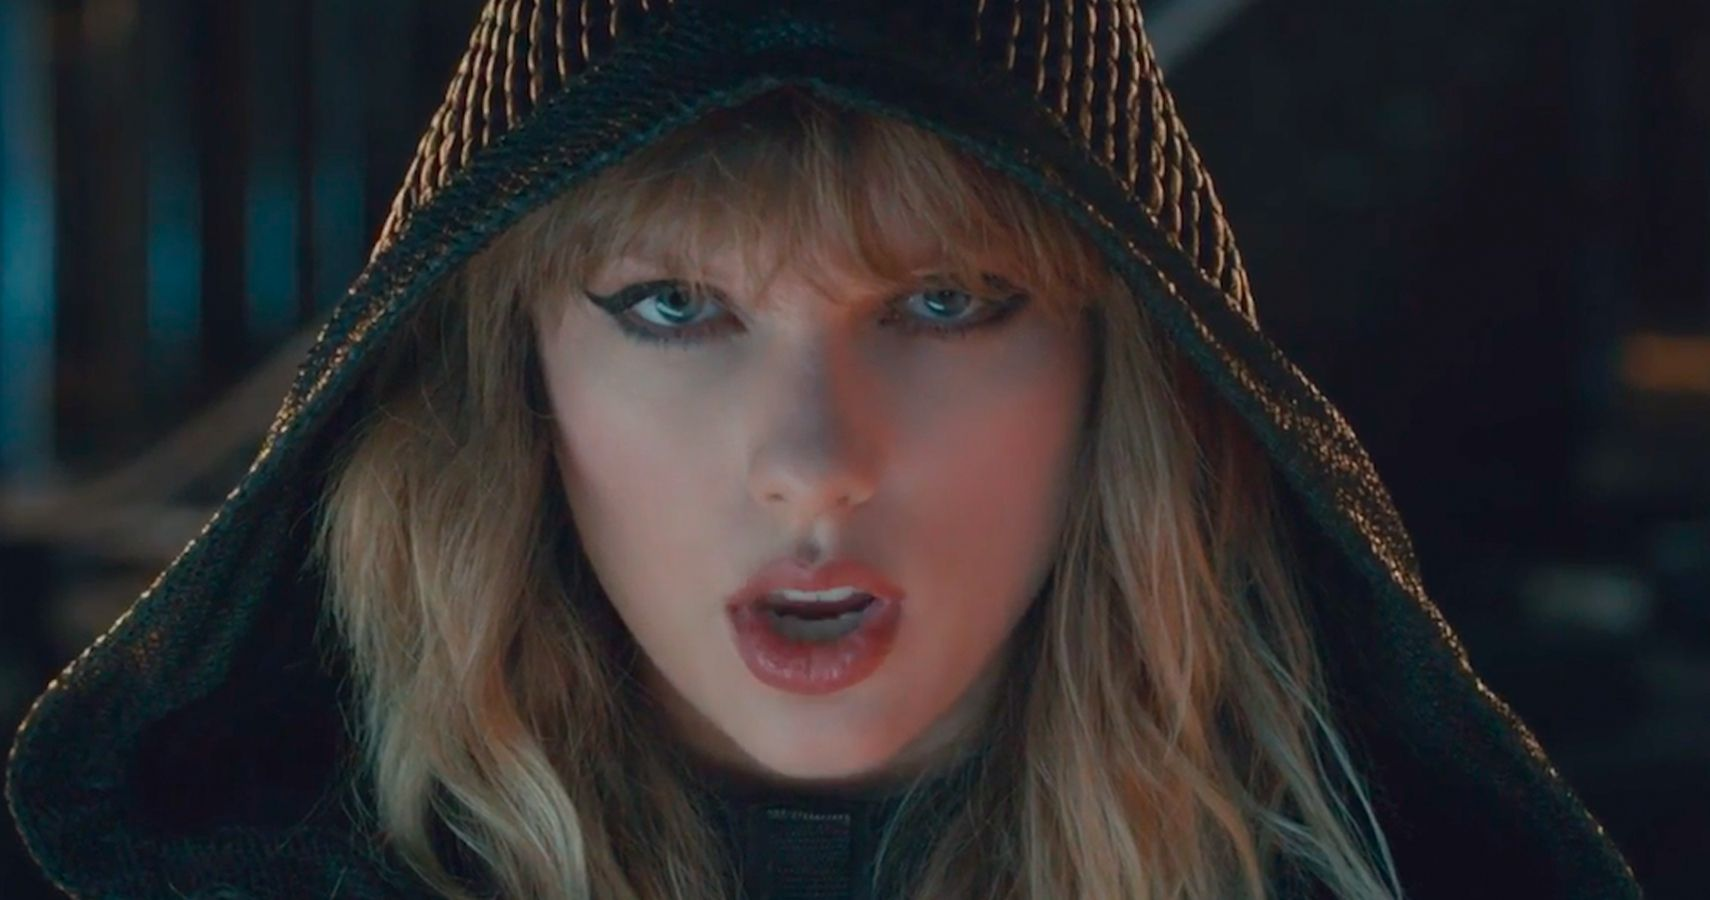 Taylor Swift Is Nude Cyborg In Latest Video  Therichest-3652